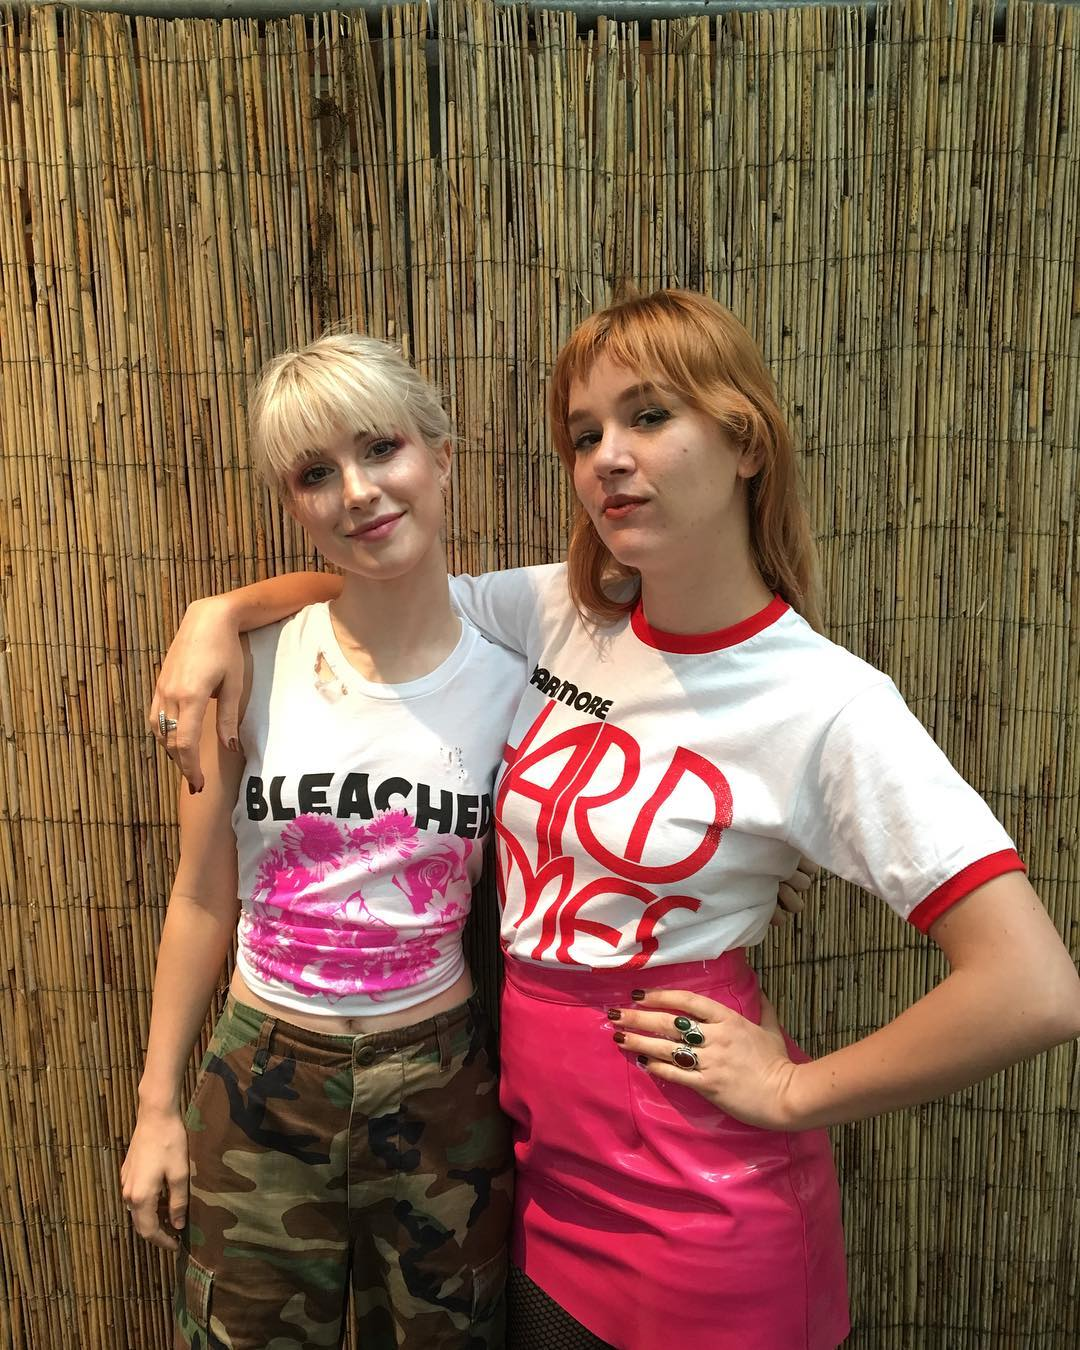 hayley & jen in Hamburg. we miss @hellobleached already! ��: @zacfarro https://t.co/h6KbkqqVay